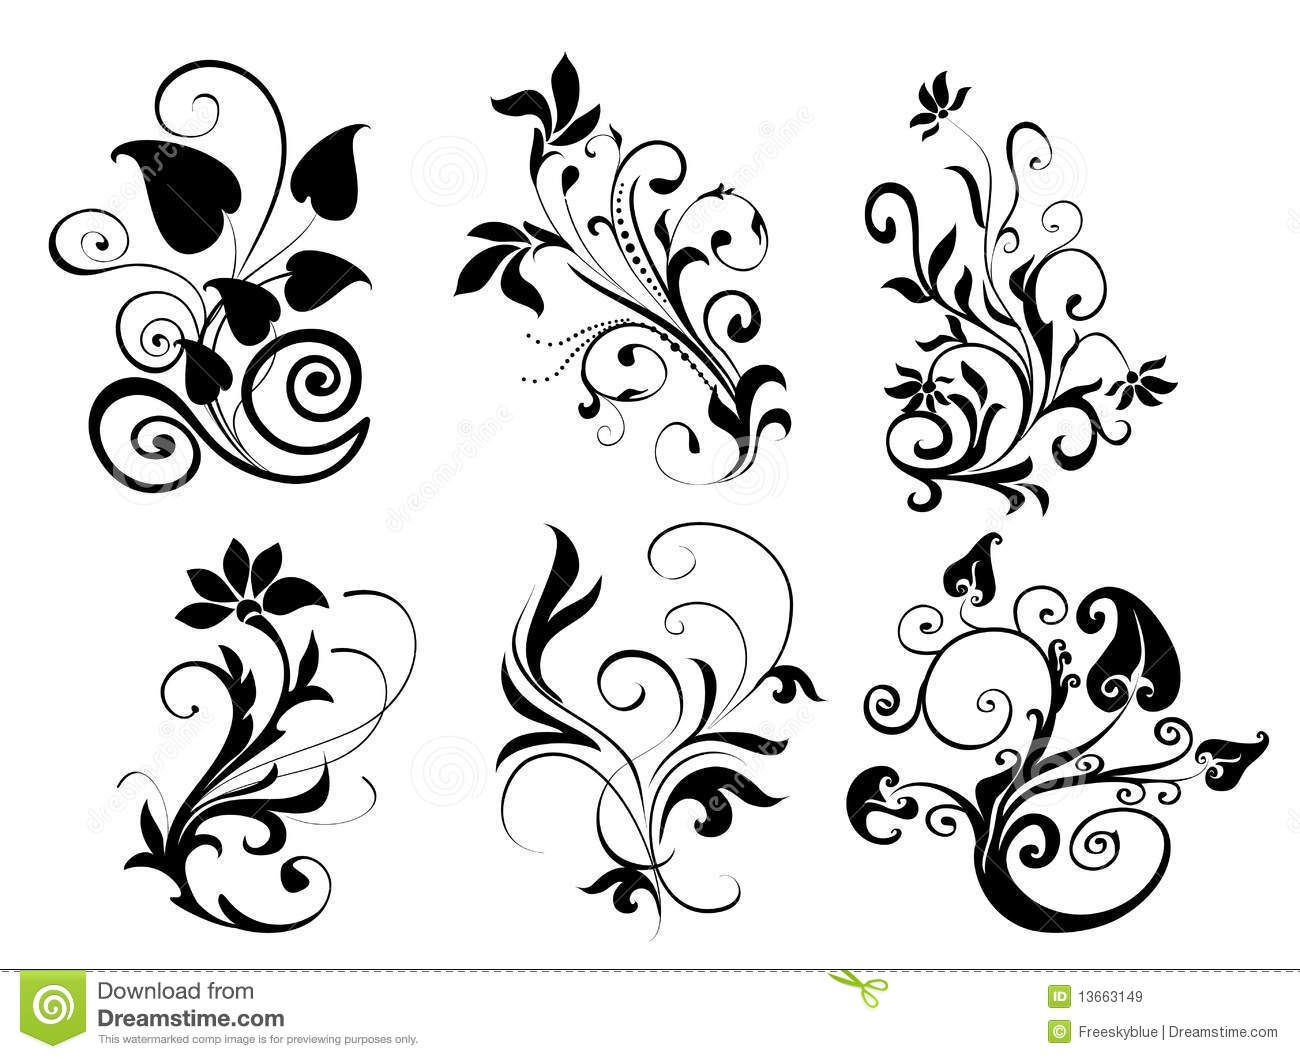 Basic Line Designs : Simple flower designs for pencil drawing google search